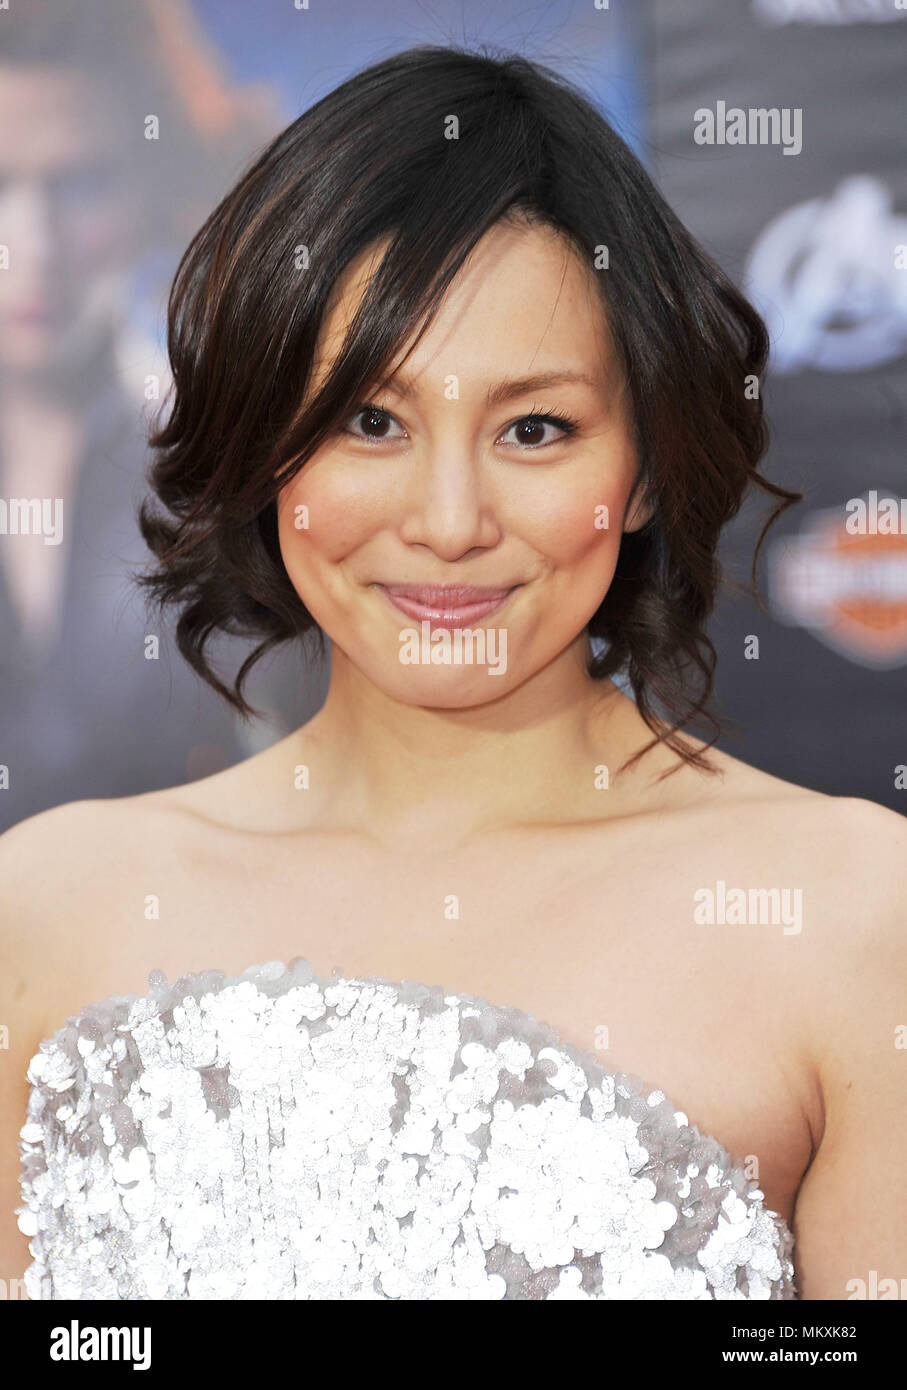 Ryoko Yonekura  at the Avengers Premiere at the El Capitan Theatre In Los Angeles.Ryoko Yonekura _104 Red Carpet Event, Vertical, USA, Film Industry, Celebrities,  Photography, Bestof, Arts Culture and Entertainment, Topix Celebrities fashion /  Vertical, Best of, Event in Hollywood Life - California,  Red Carpet and backstage, USA, Film Industry, Celebrities,  movie celebrities, TV celebrities, Music celebrities, Photography, Bestof, Arts Culture and Entertainment,  Topix, headshot, vertical, one person,, from the year , 2012, inquiry tsuni@Gamma-USA.com - Stock Image